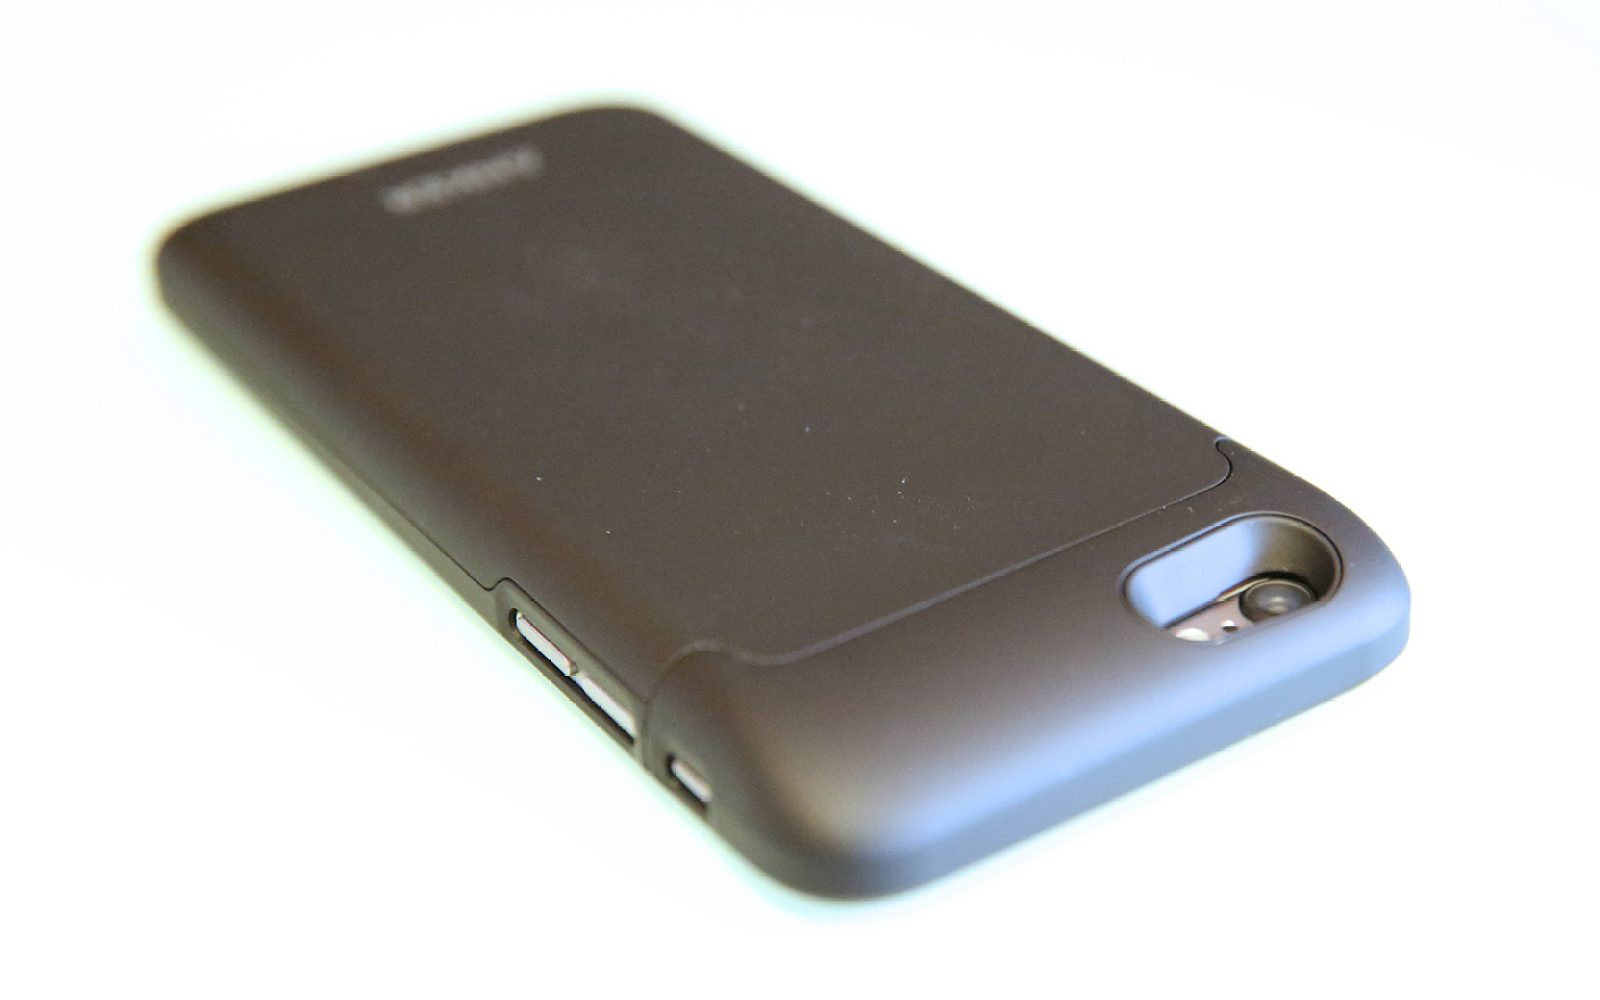 wholesale dealer 98d6e 198bb Review: Anker's Ultra Slim Battery Case for iPhone 6 offers a ...